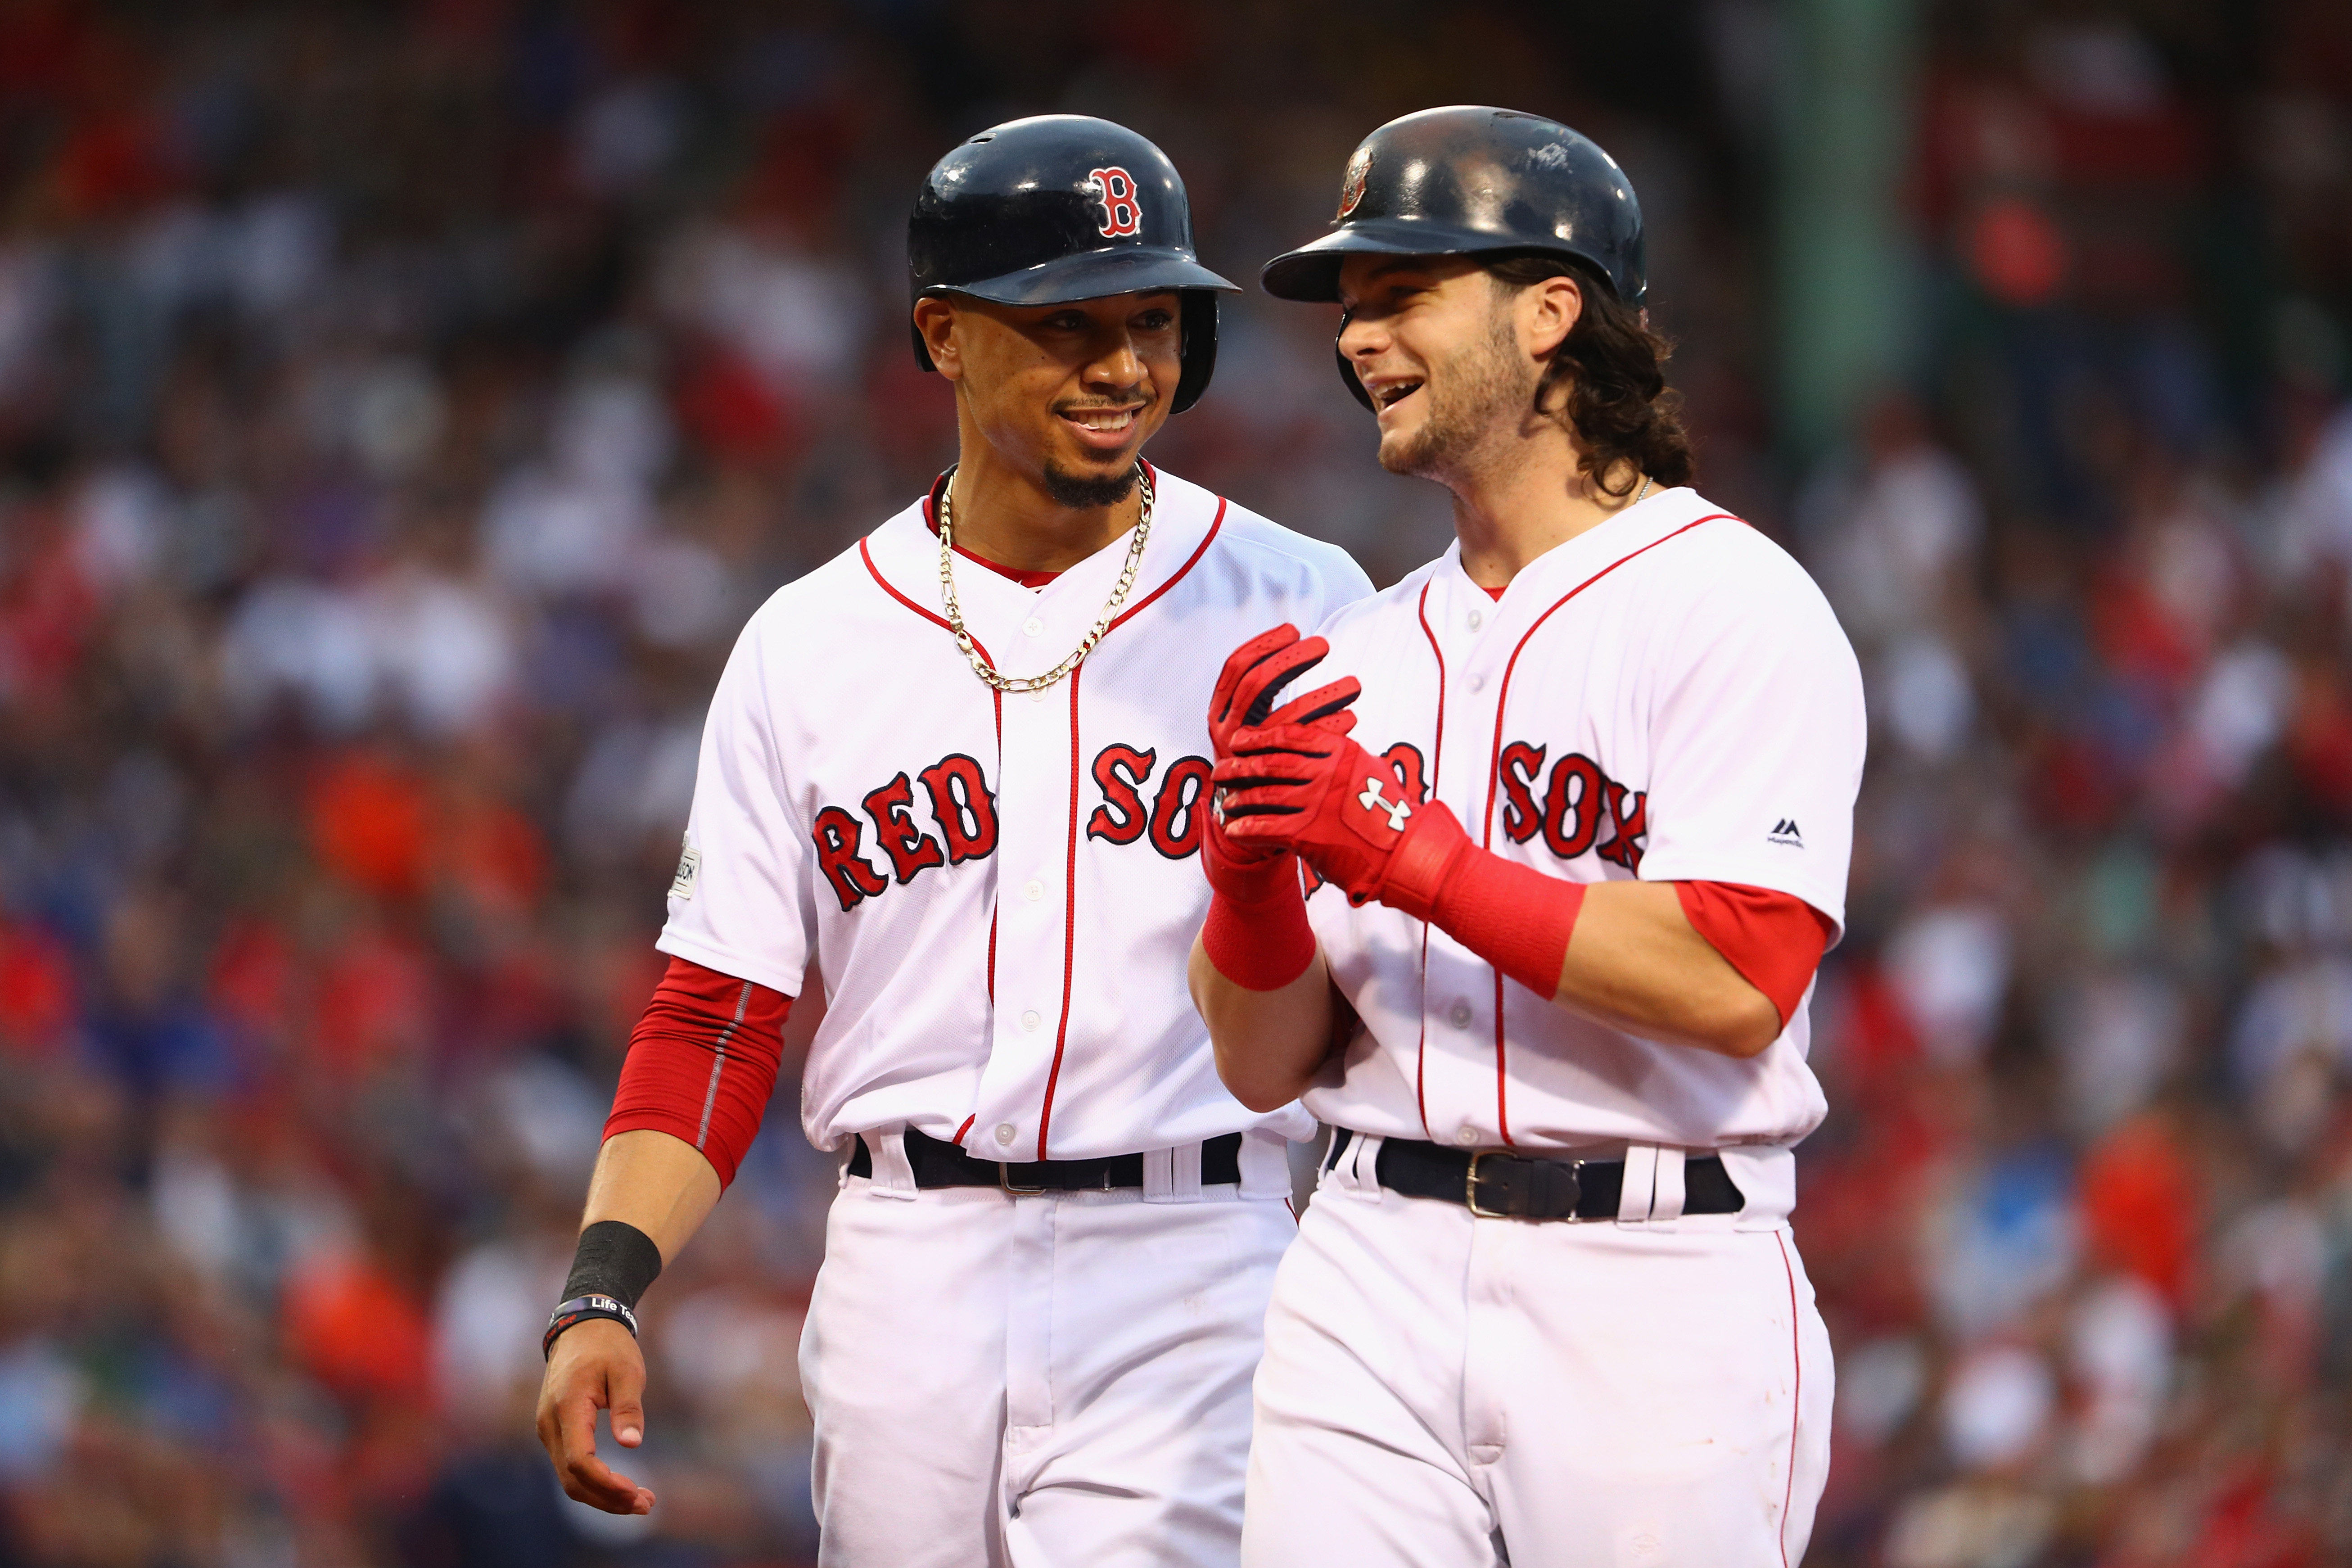 Red sox assets that should be off limits in trade talks voltagebd Images